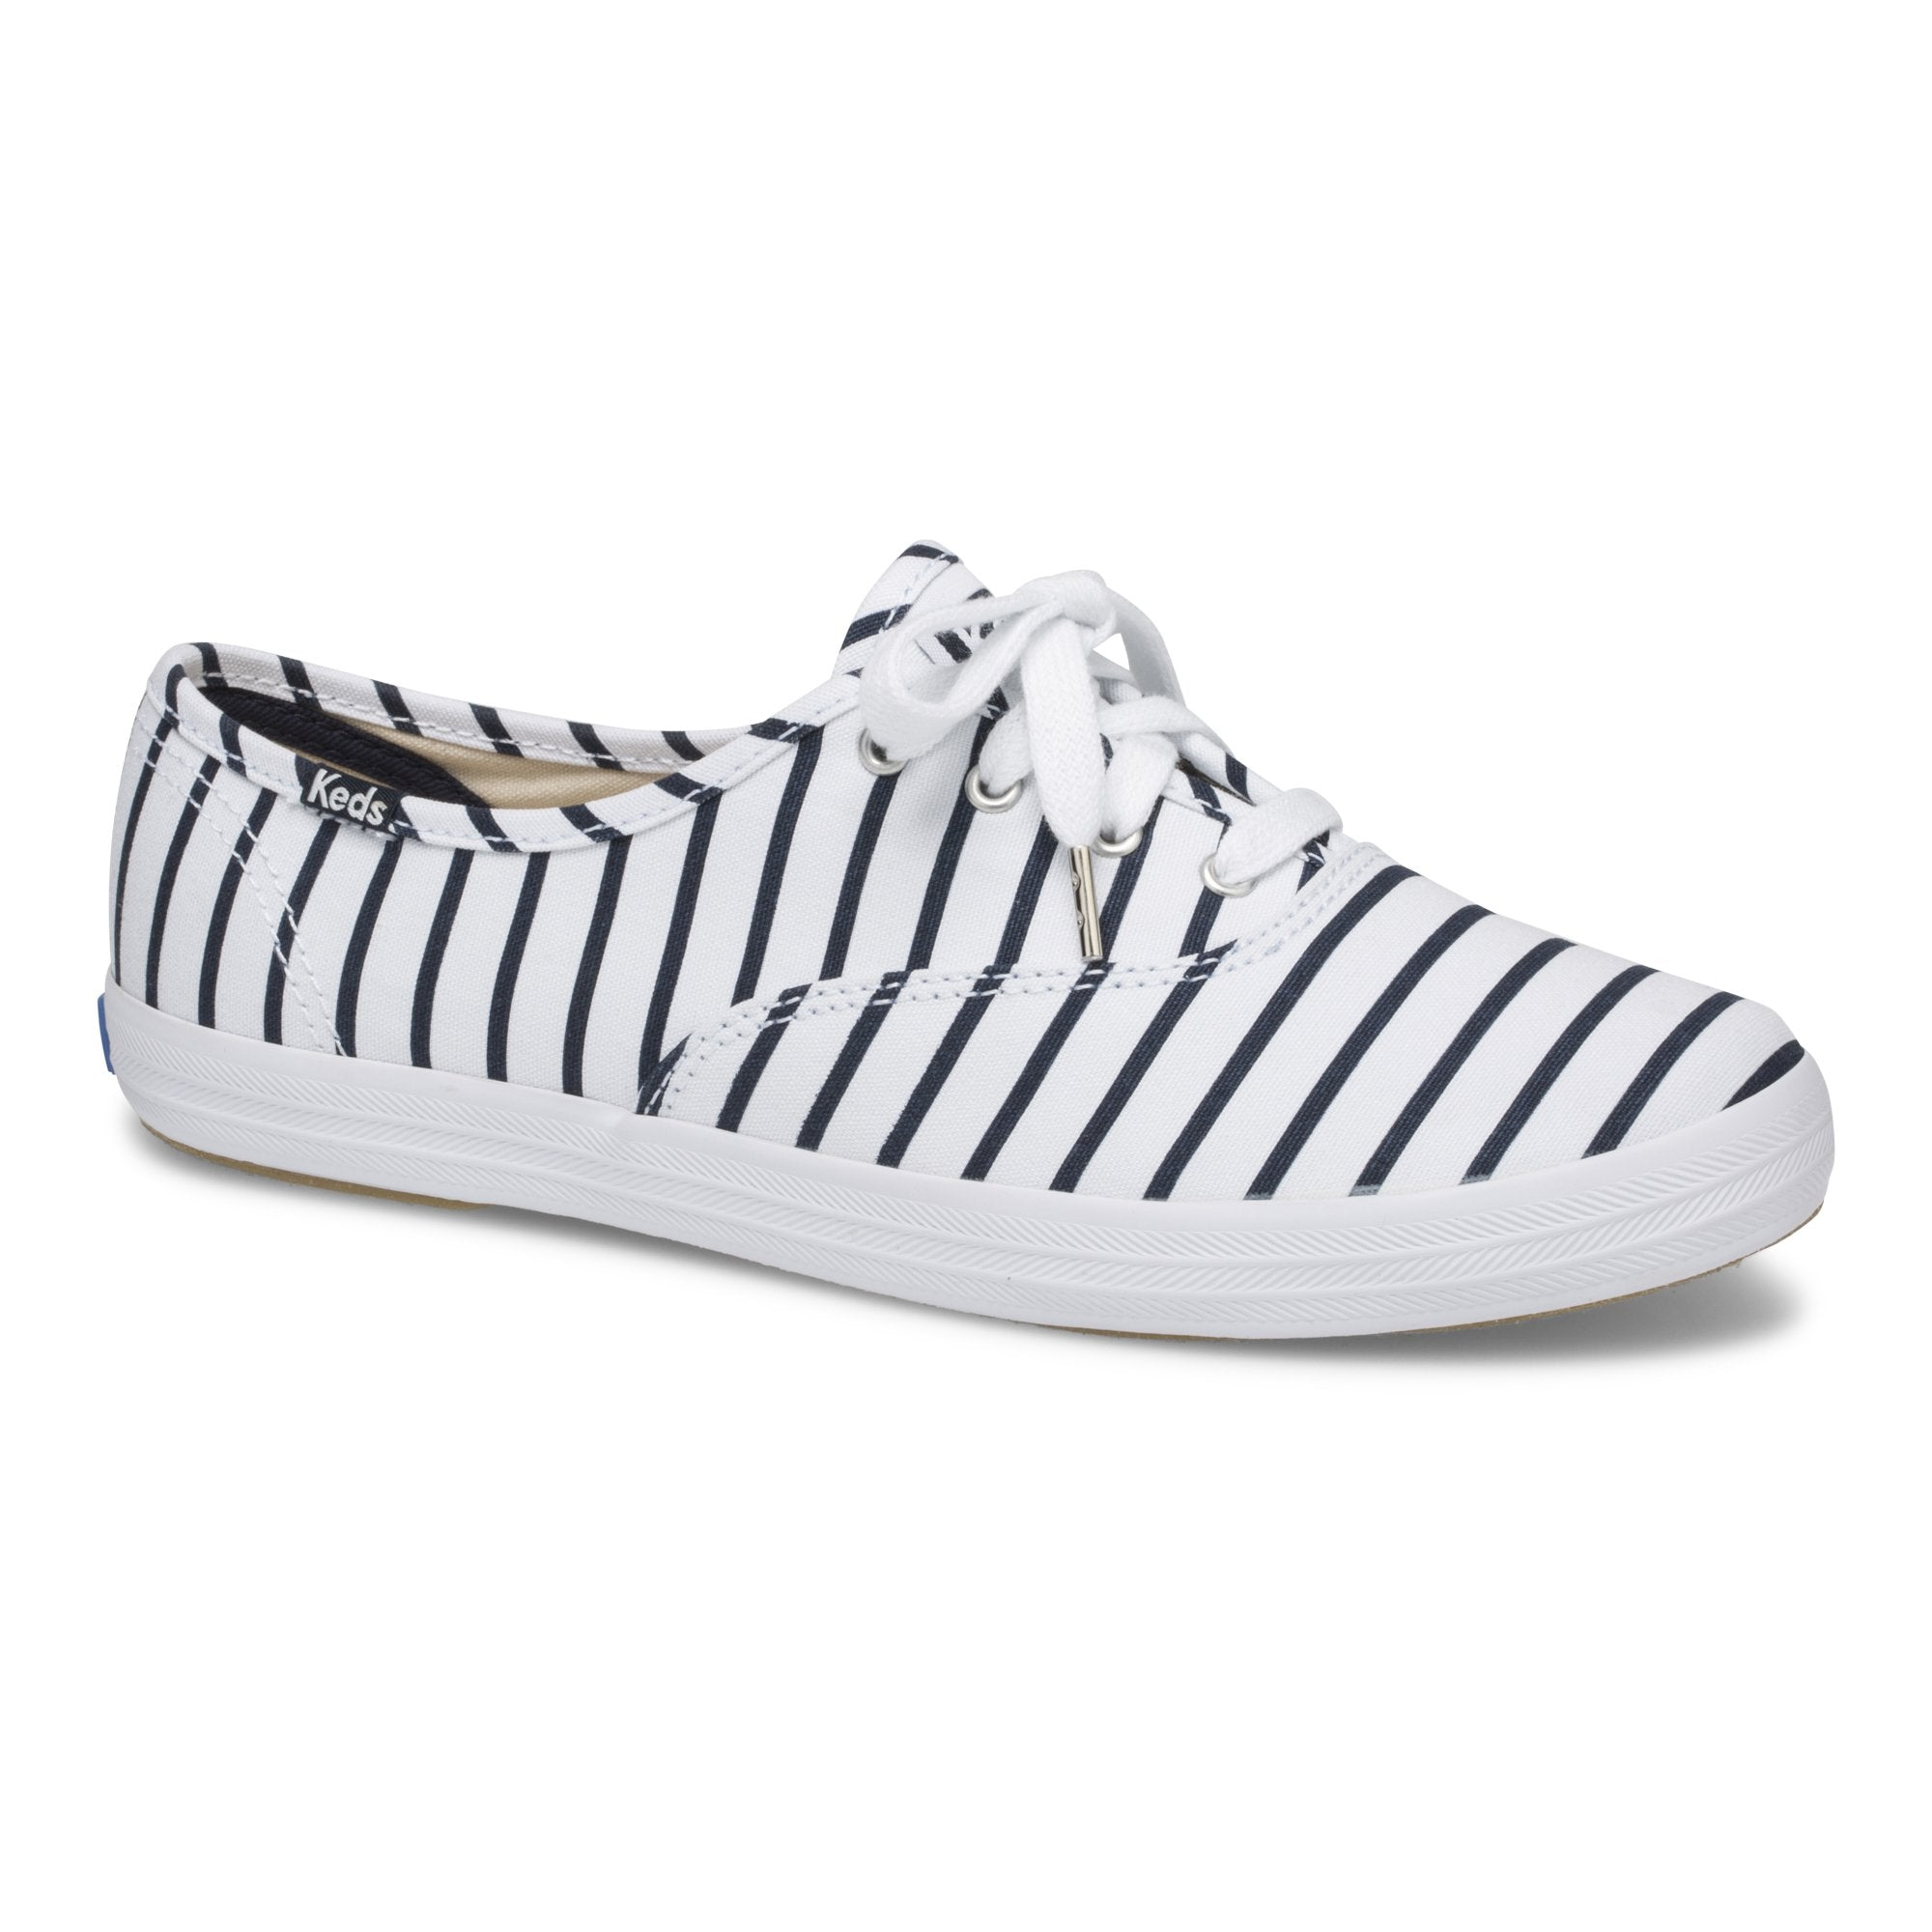 Women's Champion Breton Stripe